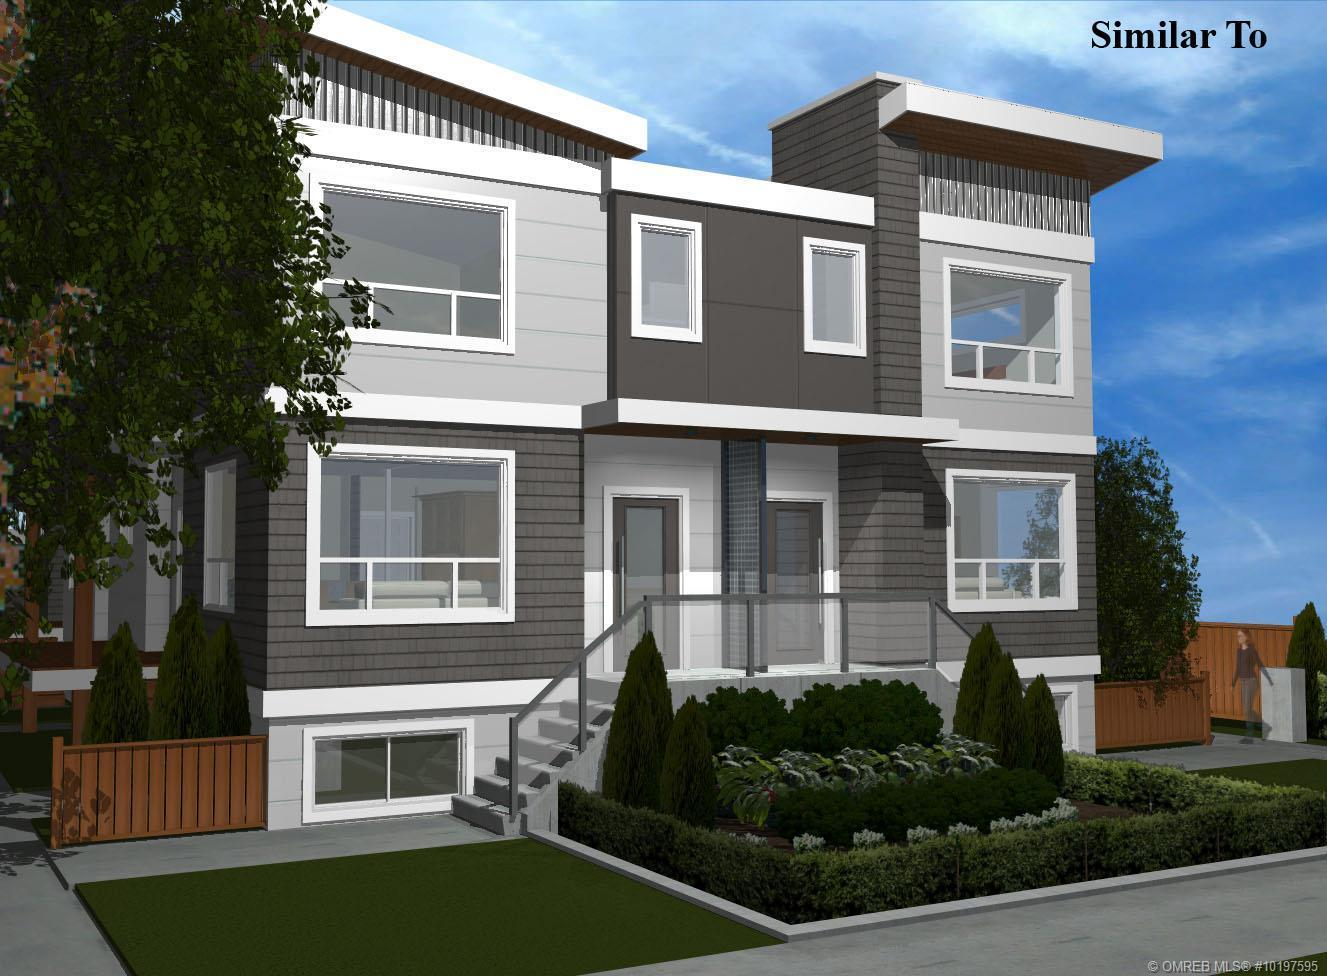 Removed: 1 - 861 Rose Avenue, Kelowna, BC - Removed on 2020-05-05 10:30:16